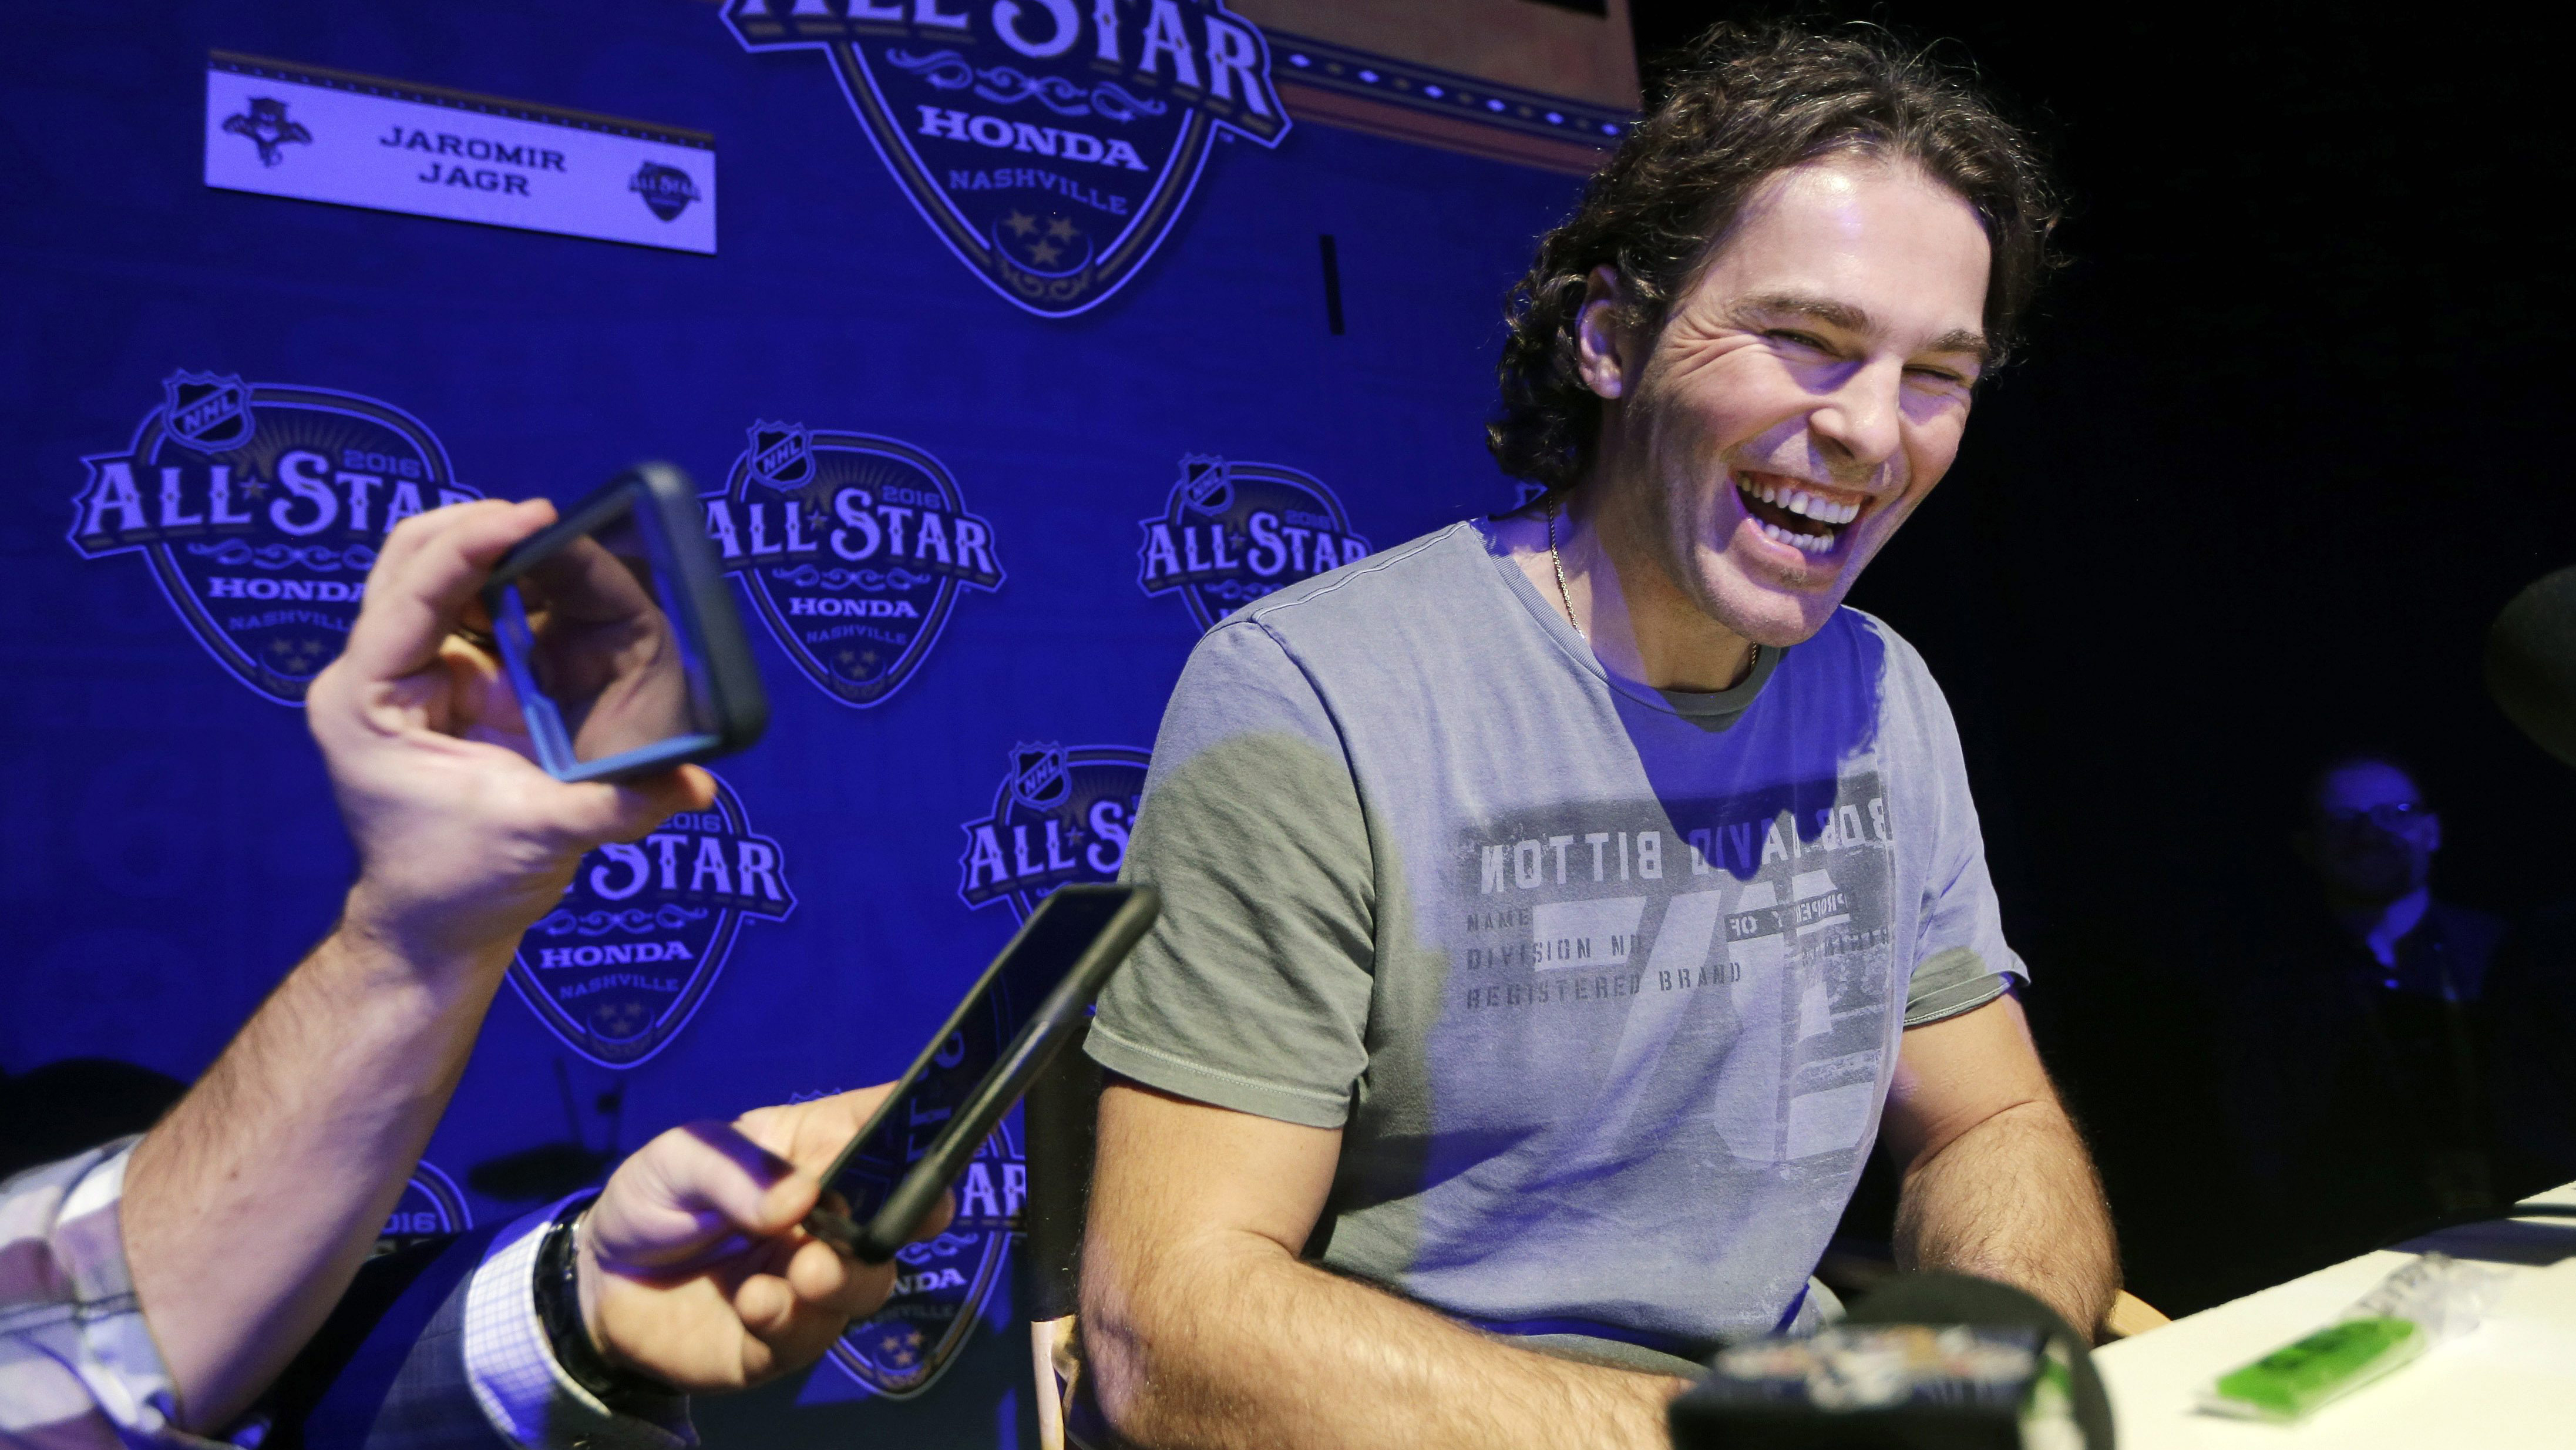 Jaromir Jagr laughs as he talks with reporters at the NHL hockey All-Star game media day. (Mark Humphrey/AP)